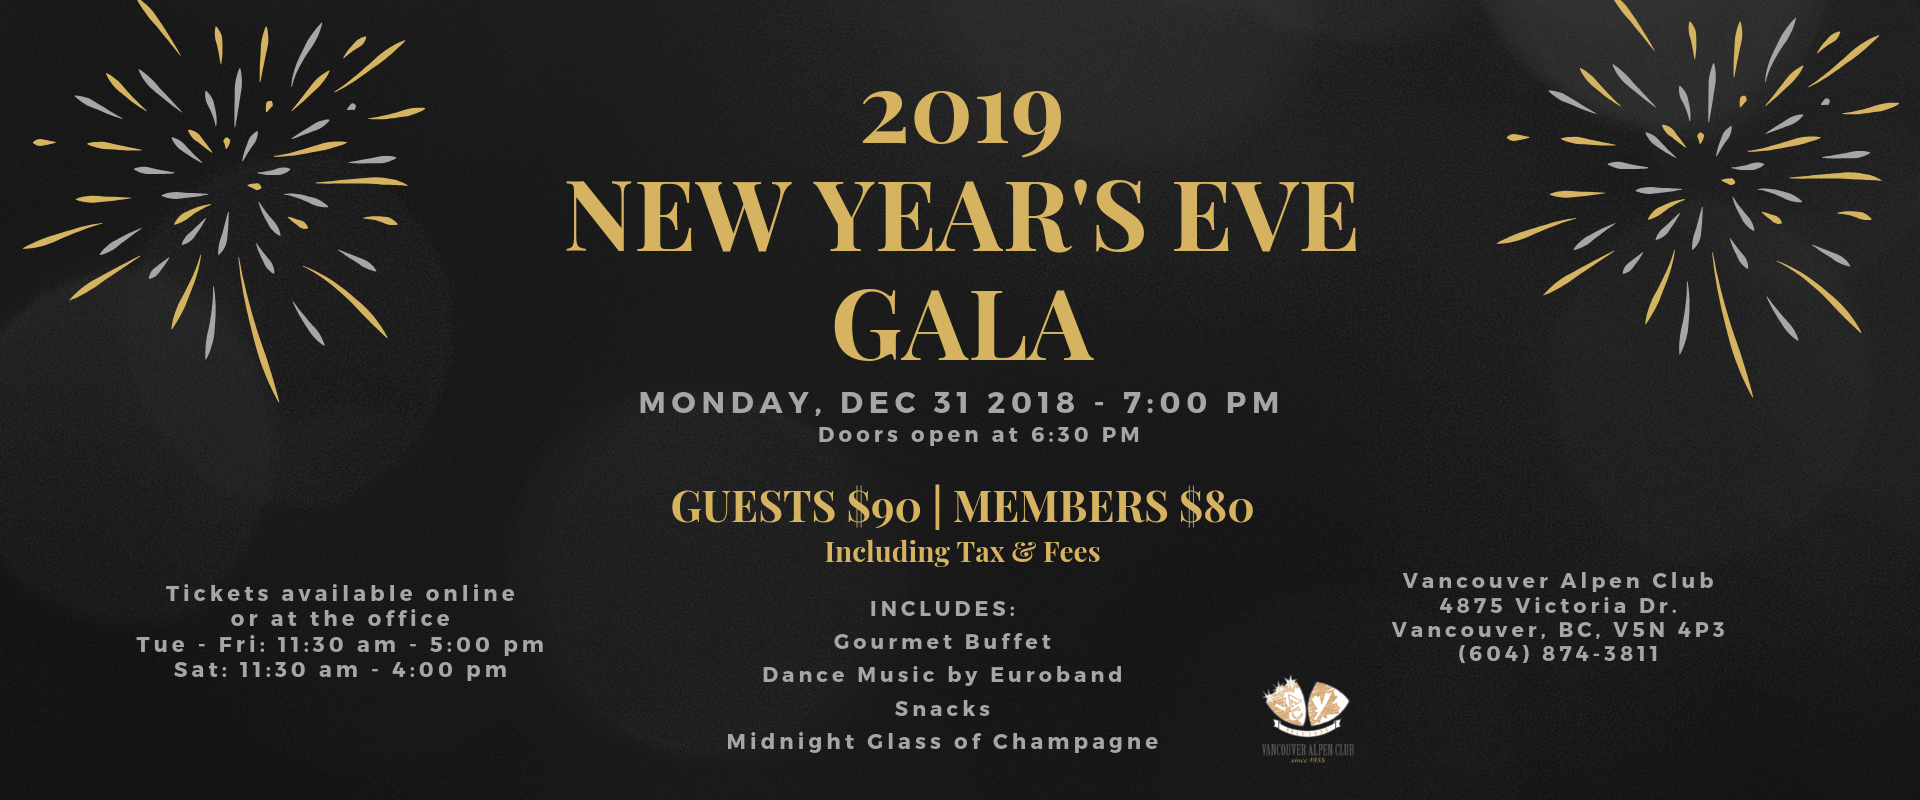 2019 New Year's Eve Gala